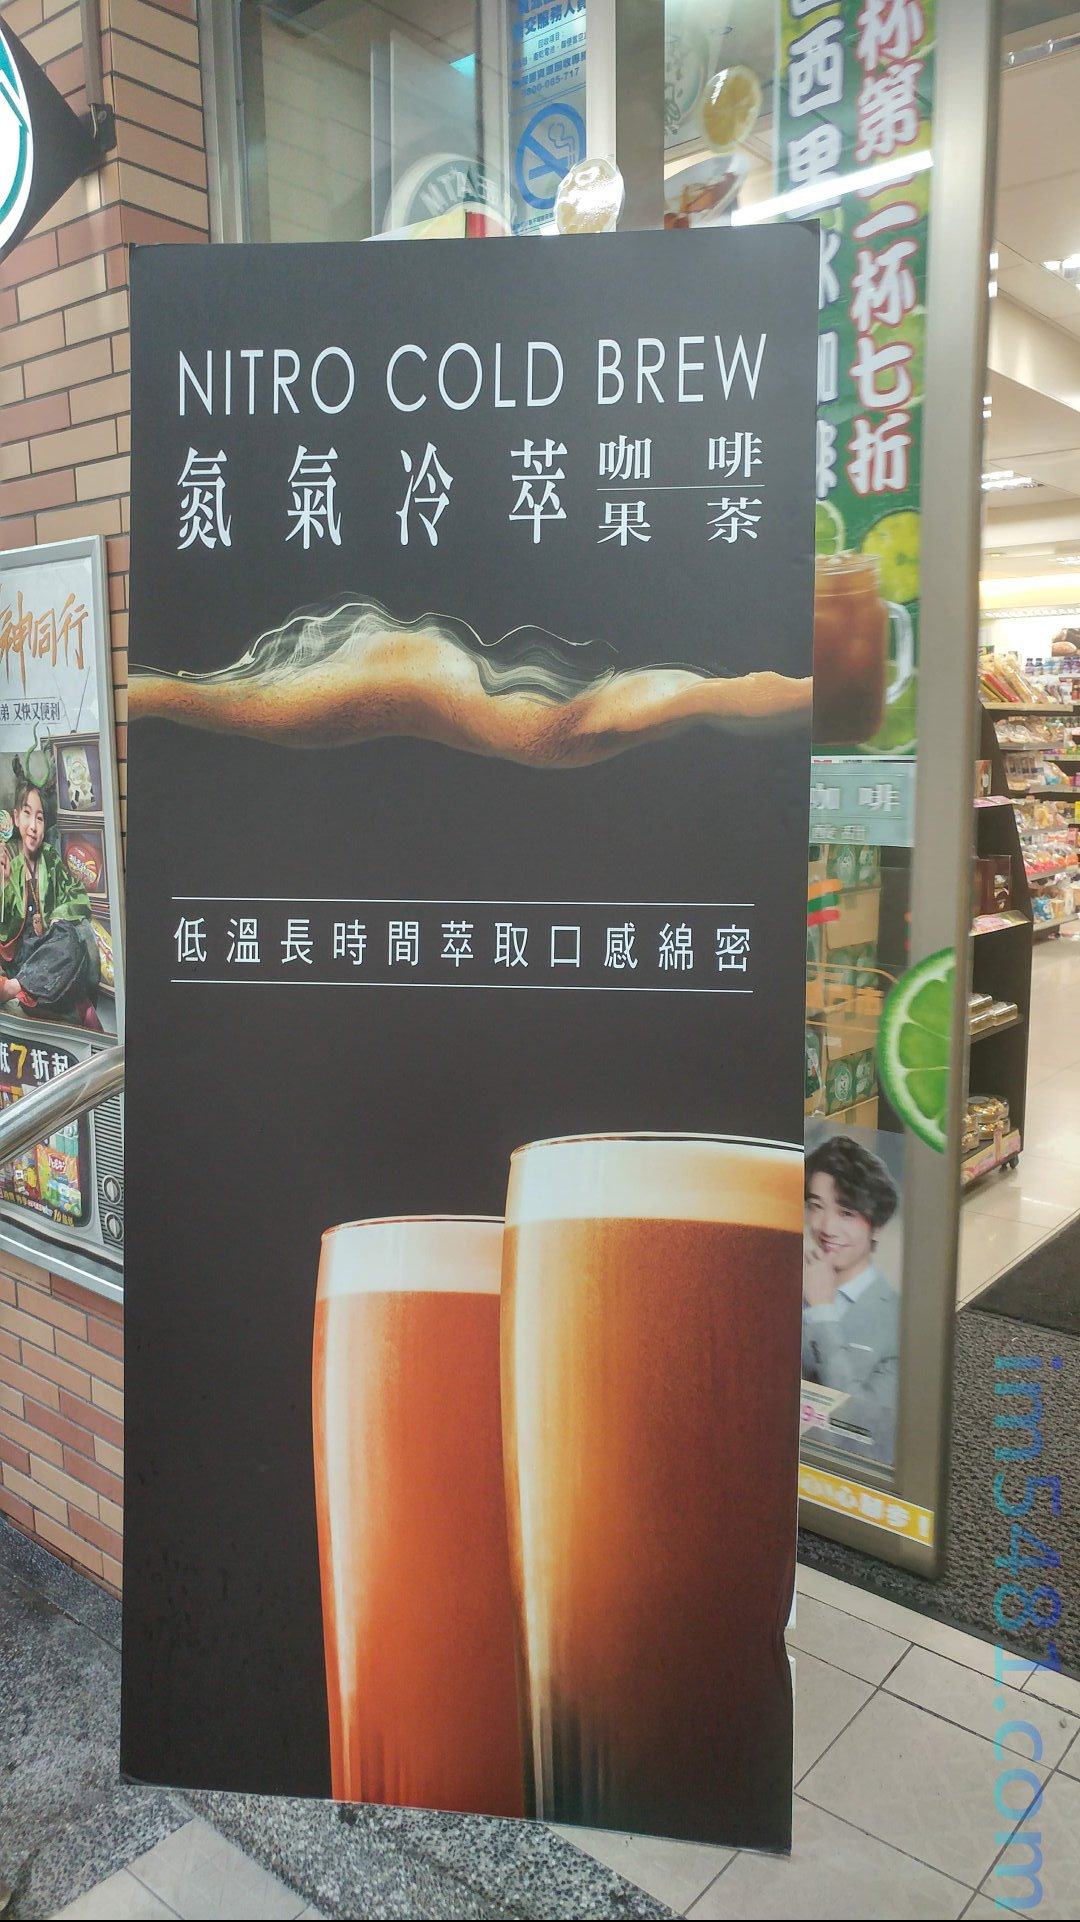 7-11 City Cafe Nitro Cold Brew氮氣冷萃咖啡/果茶